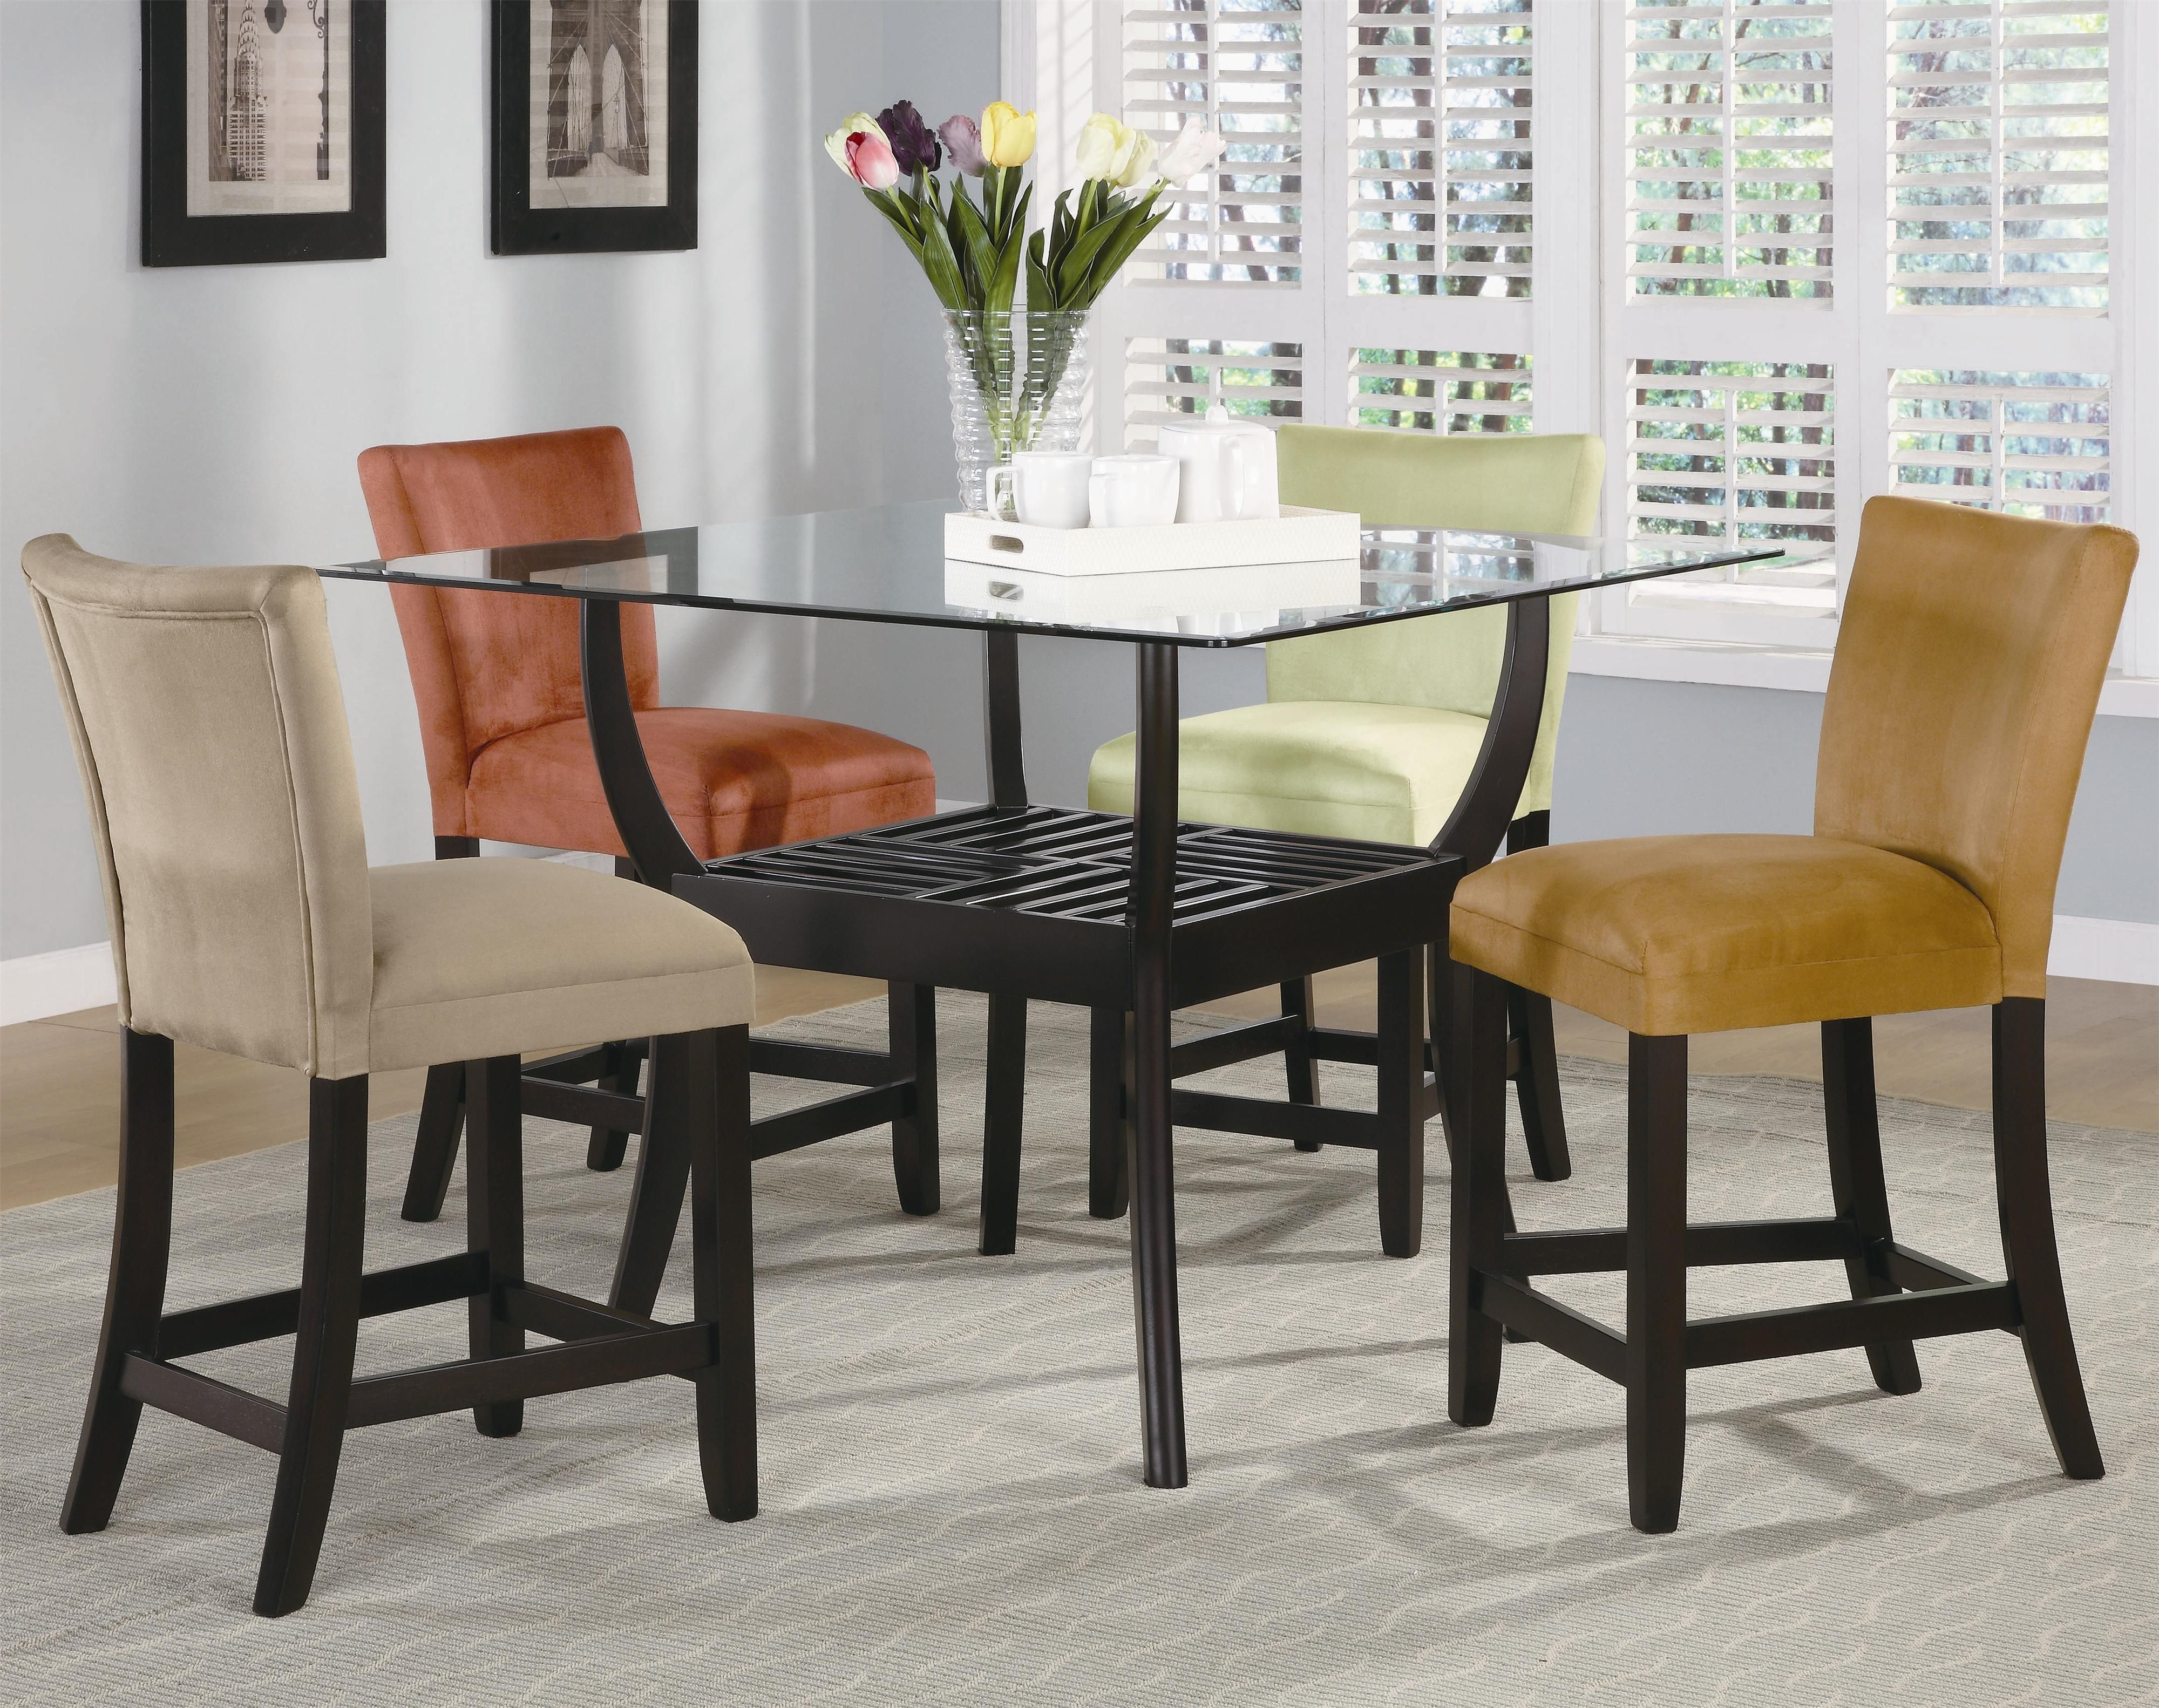 17+ Counter top dining table and chairs Trend